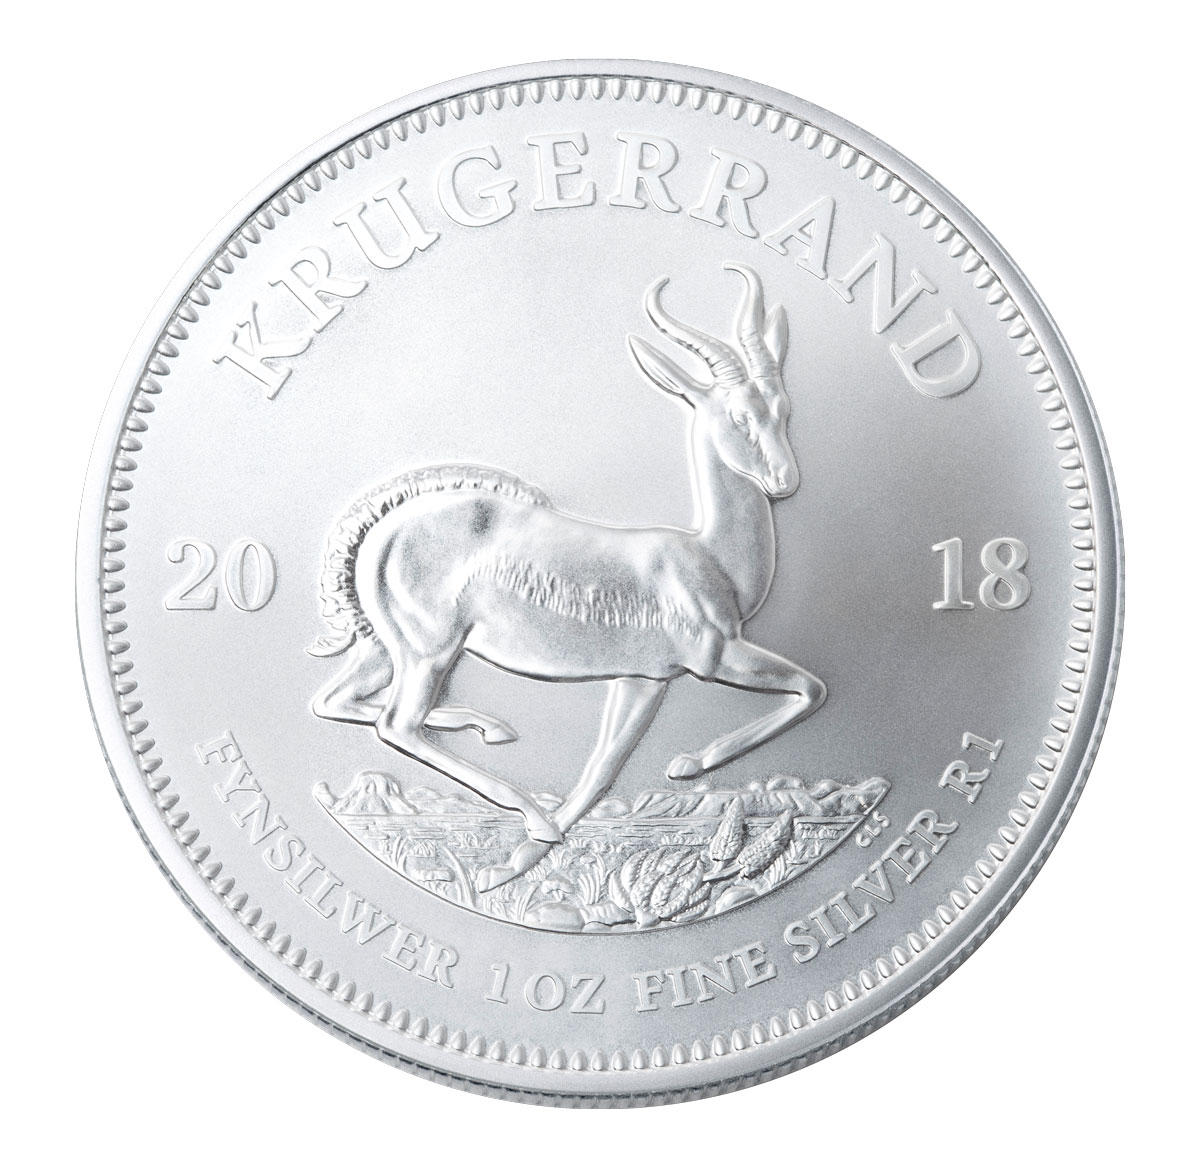 2018 South Africa 1 oz Silver Krugerrand R1 Coin GEM BU